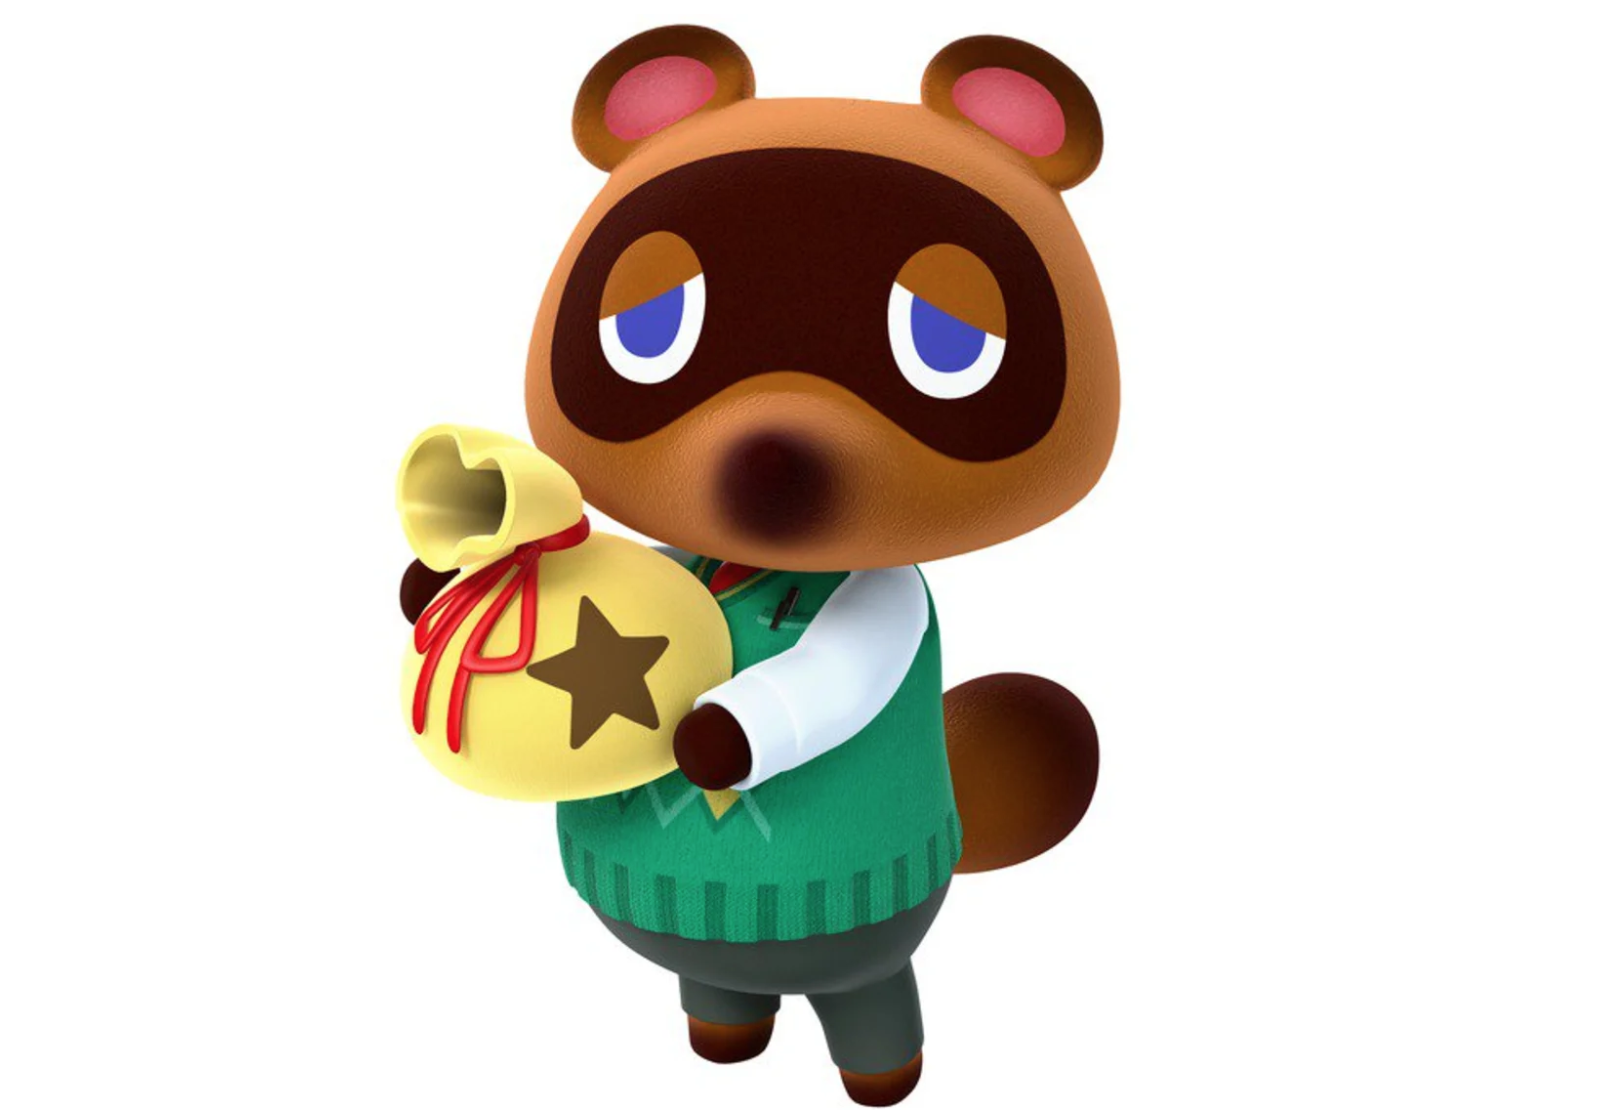 Animal Crossing Player Becoming 'Bellionaire' Selling Turnips